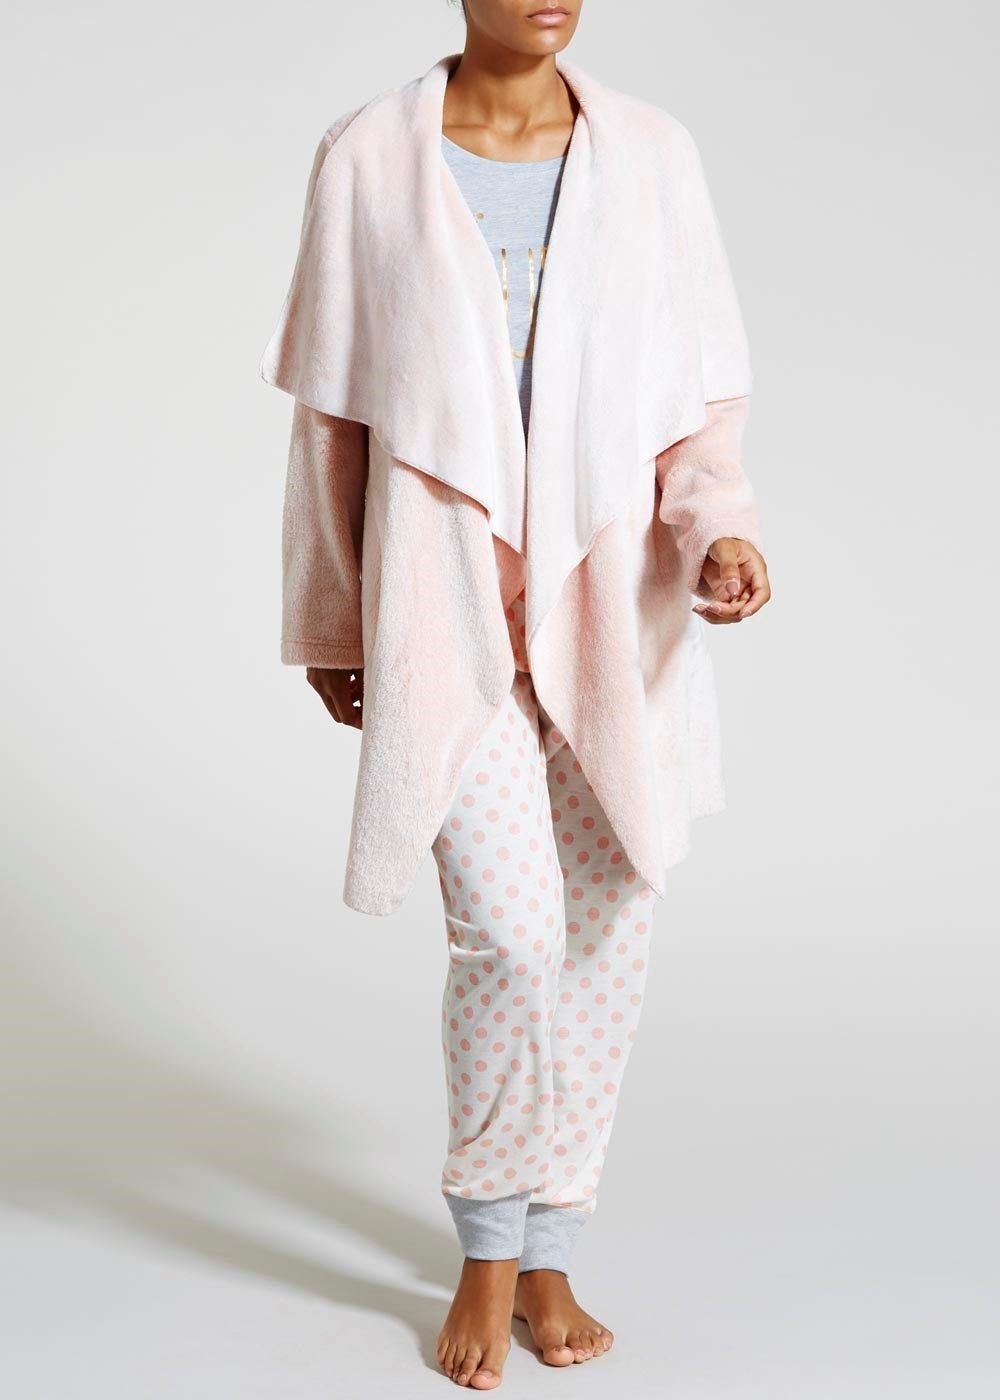 Waterfall Dressing Gown | Nightwear | Pinterest | Gowns and Shopping